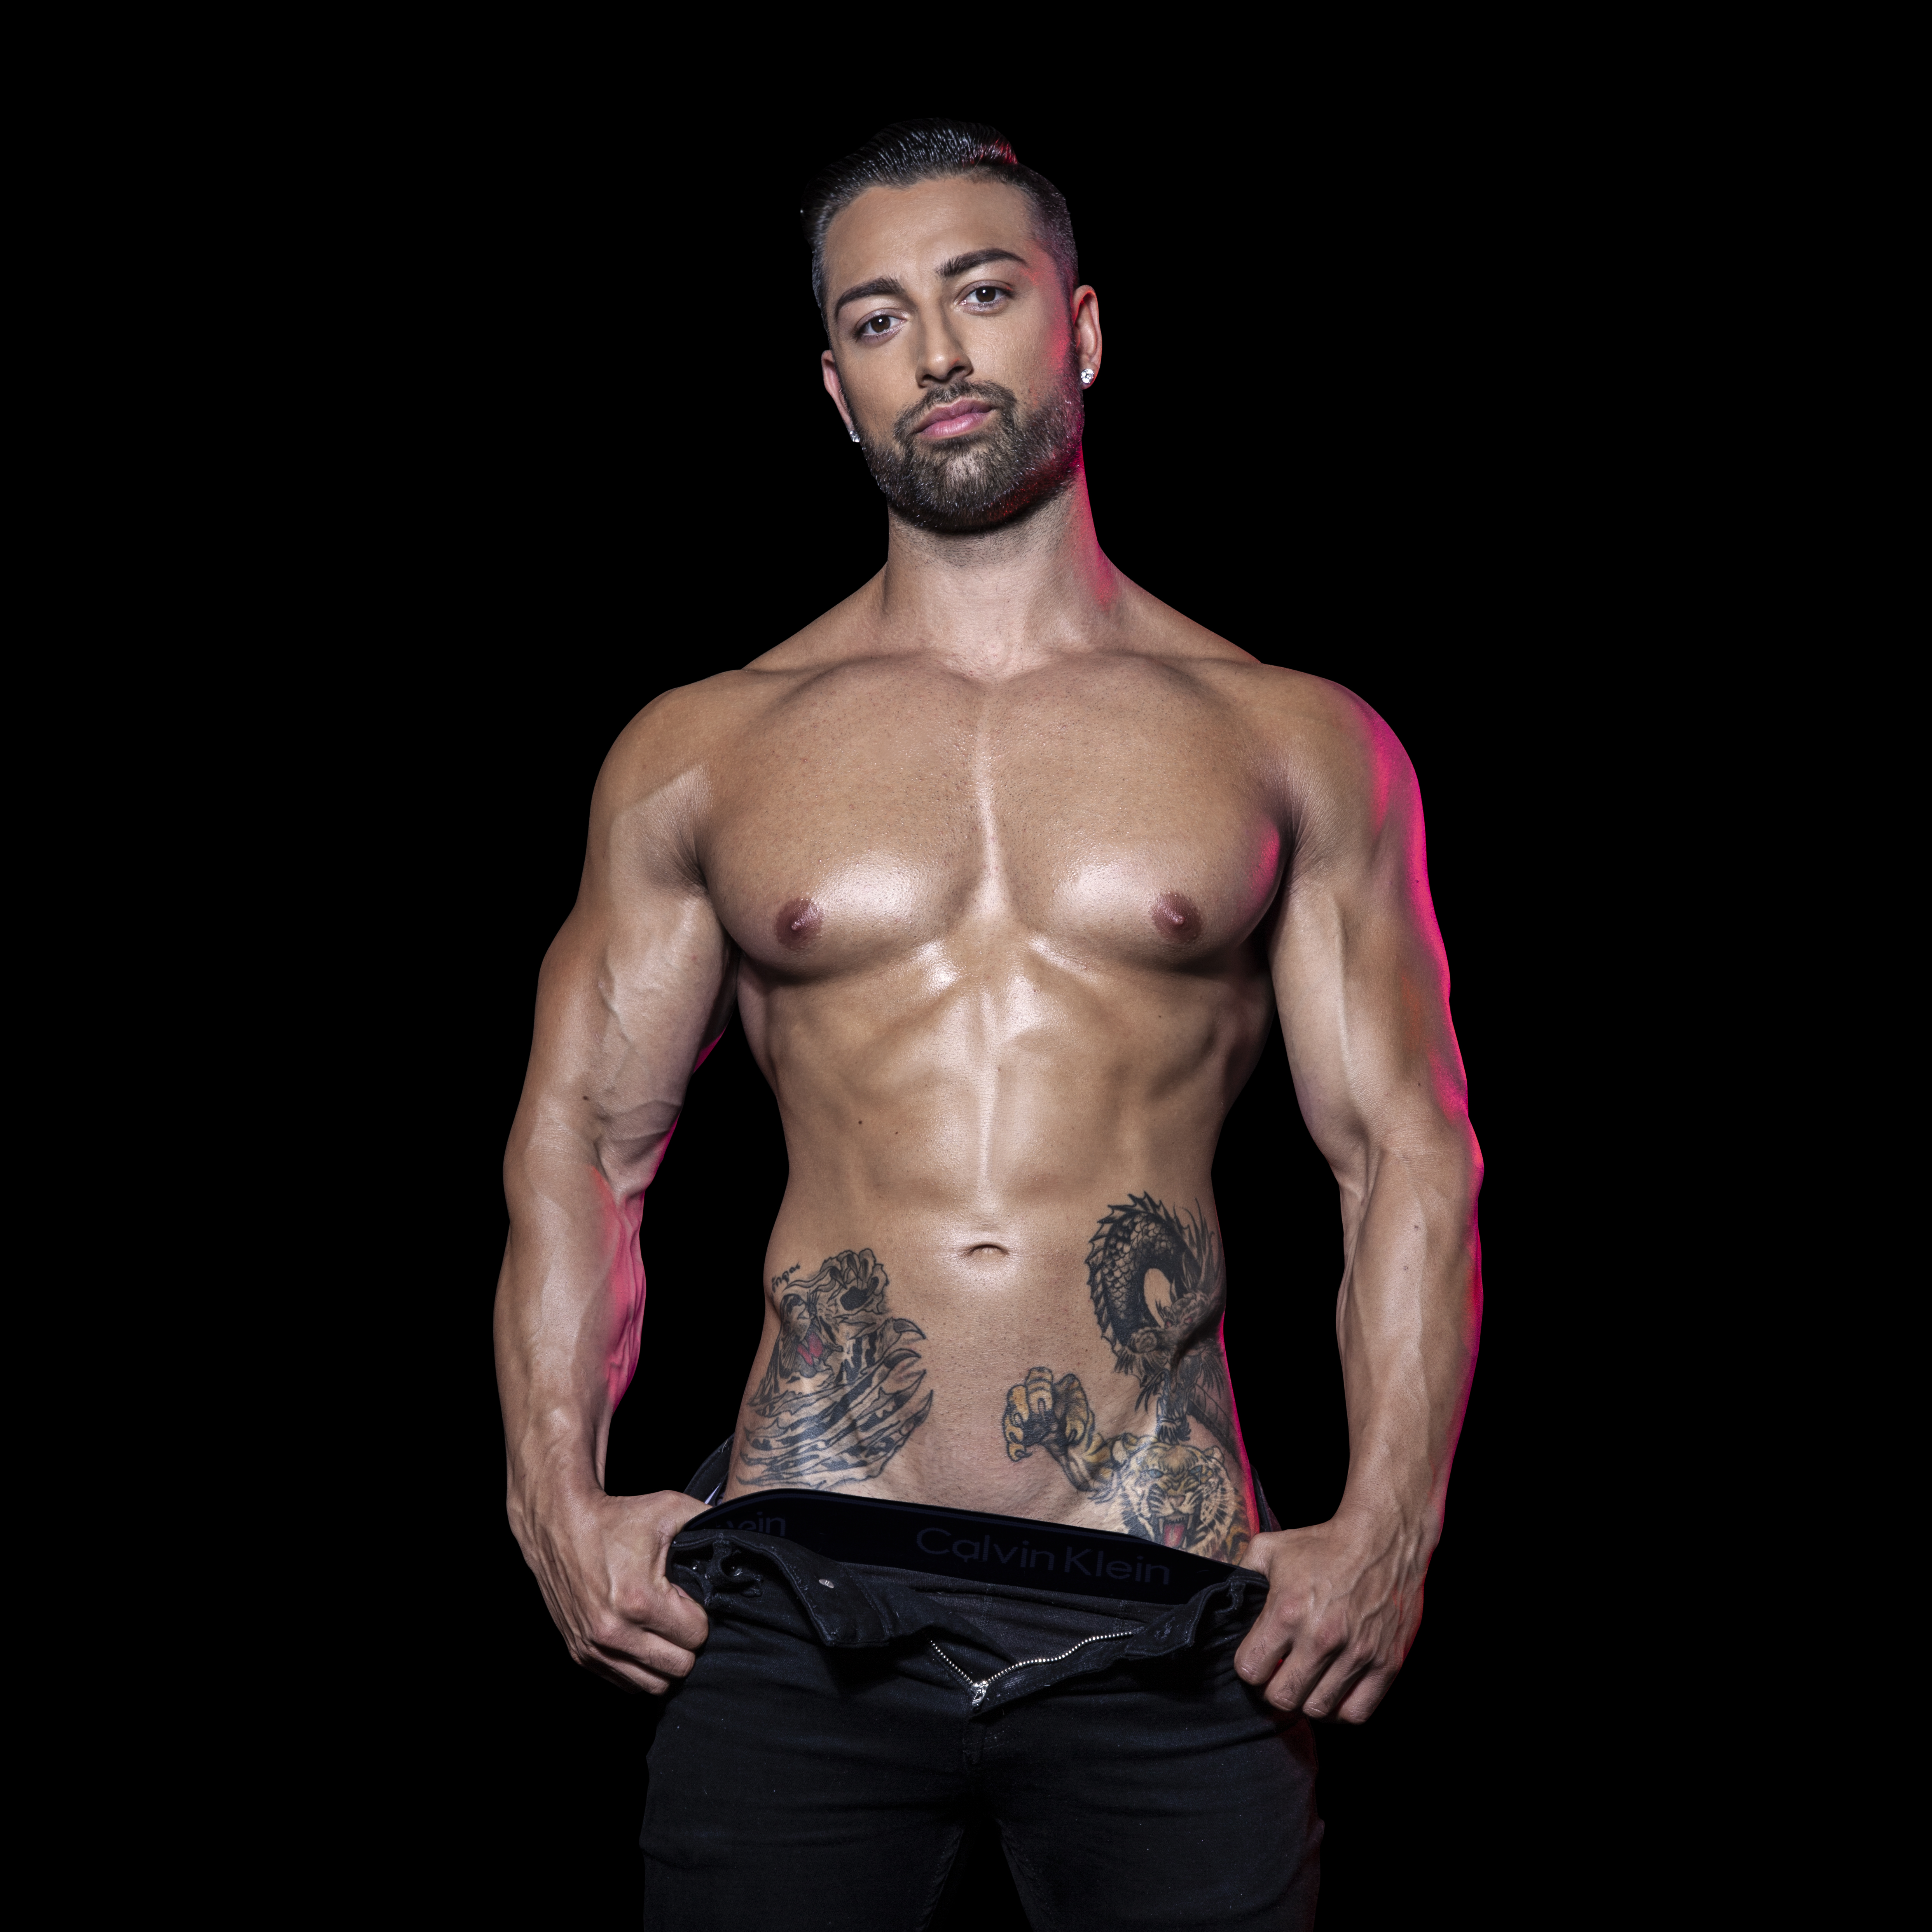 male strippers from the Dreamboys male strip club | Jason